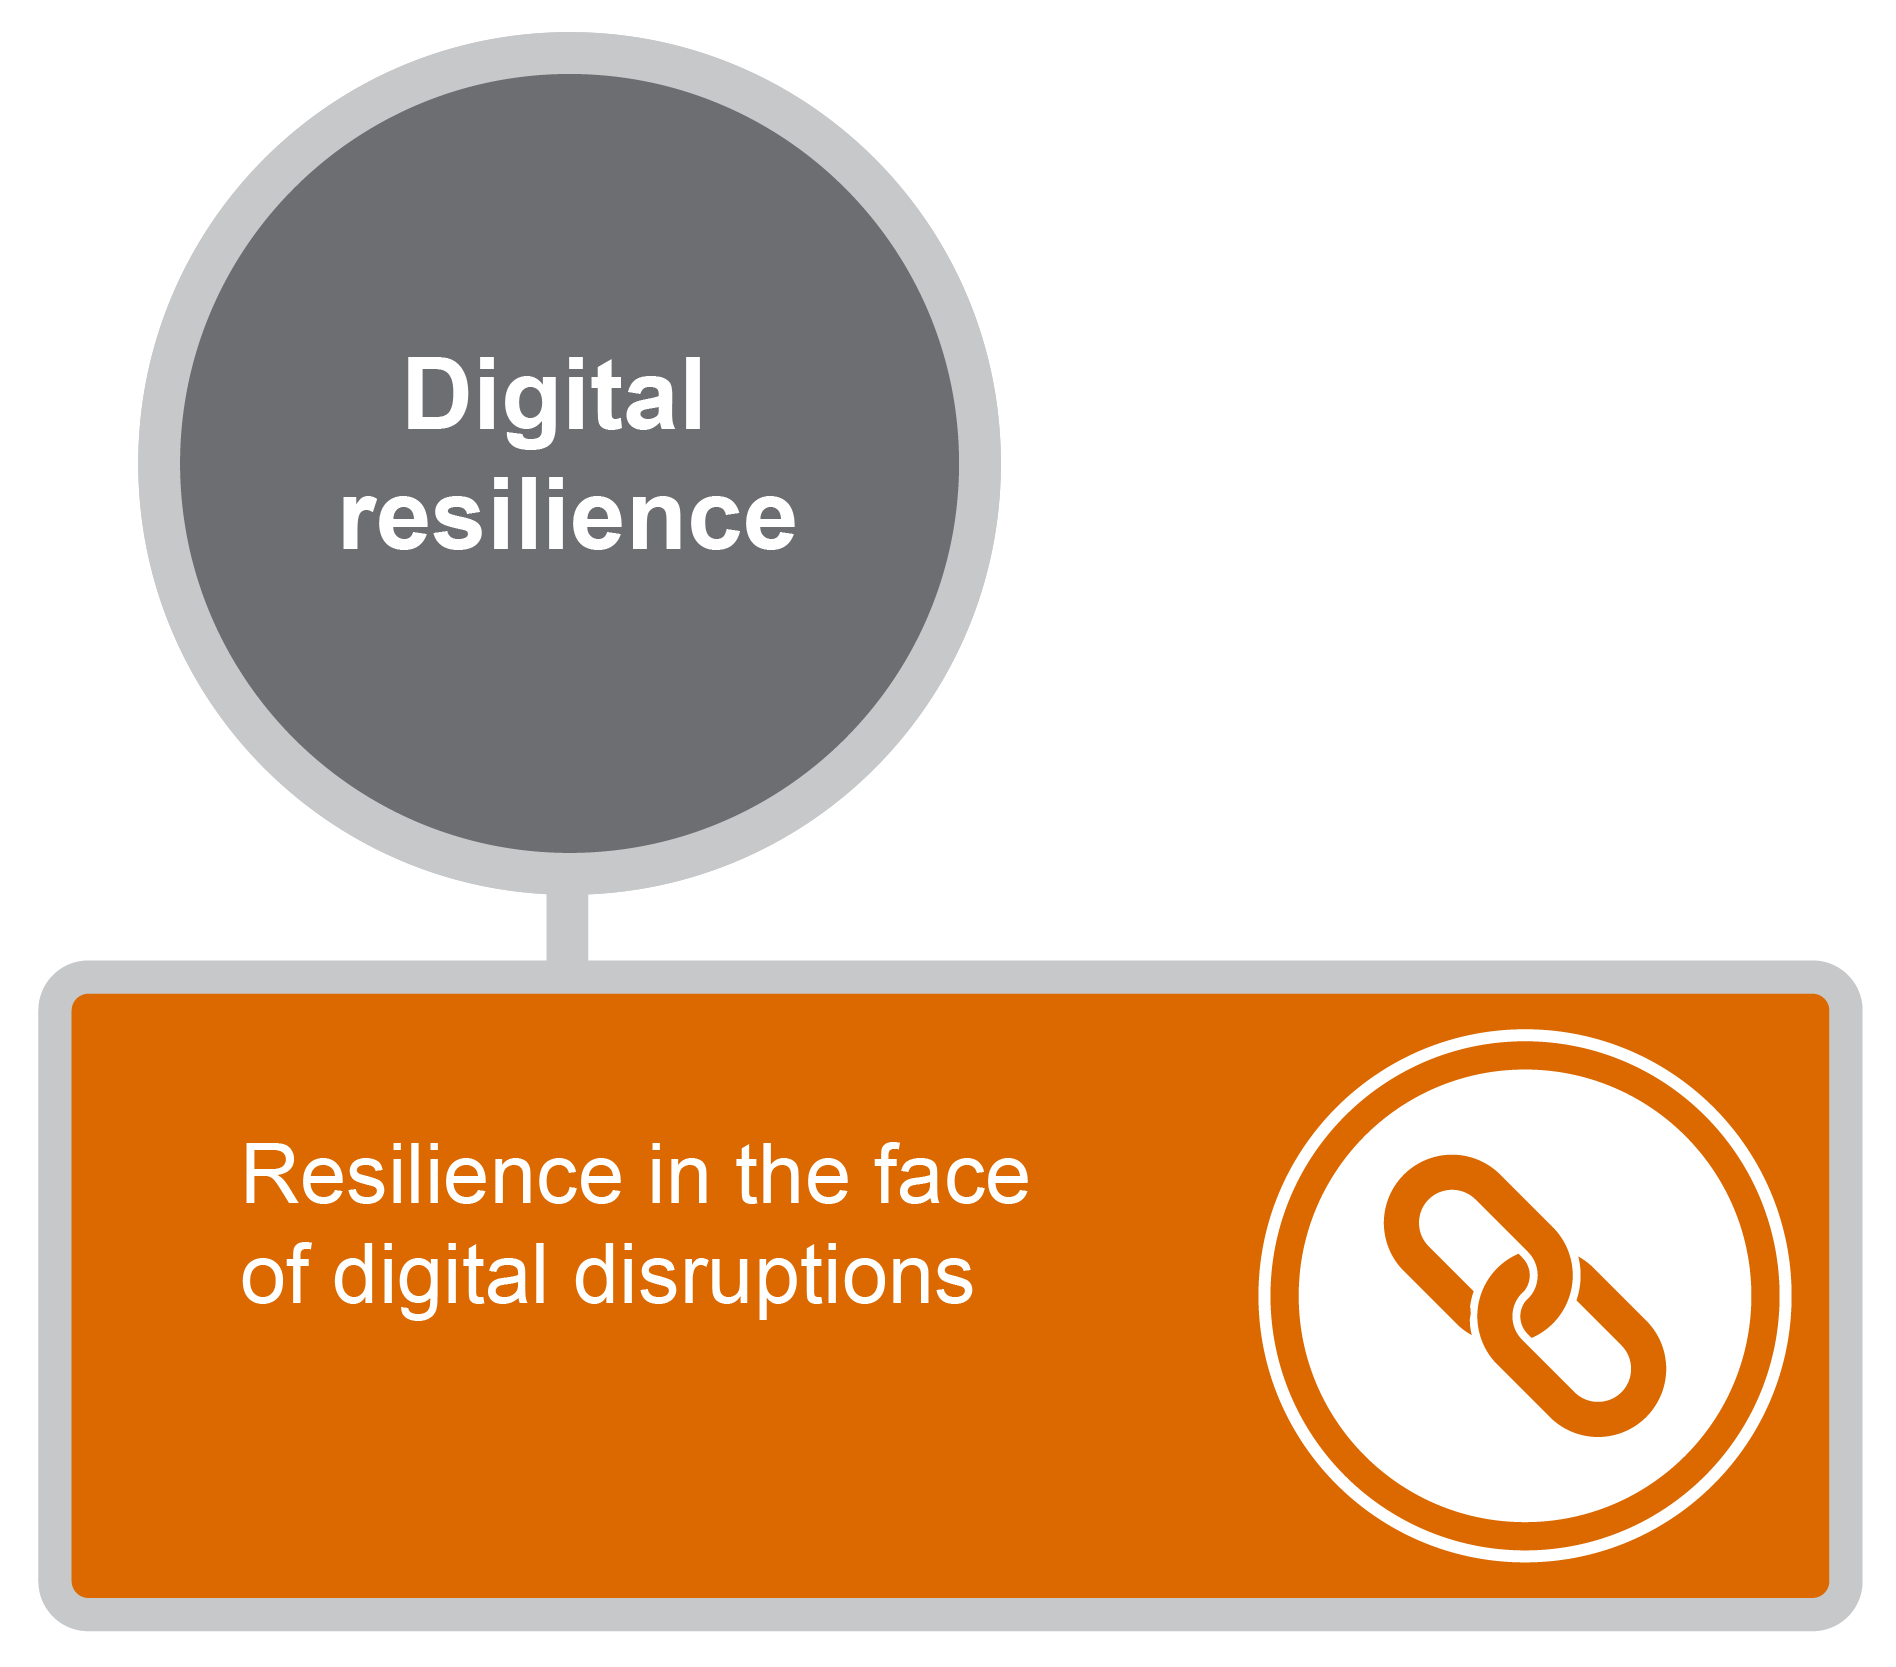 Digital resilience graphic